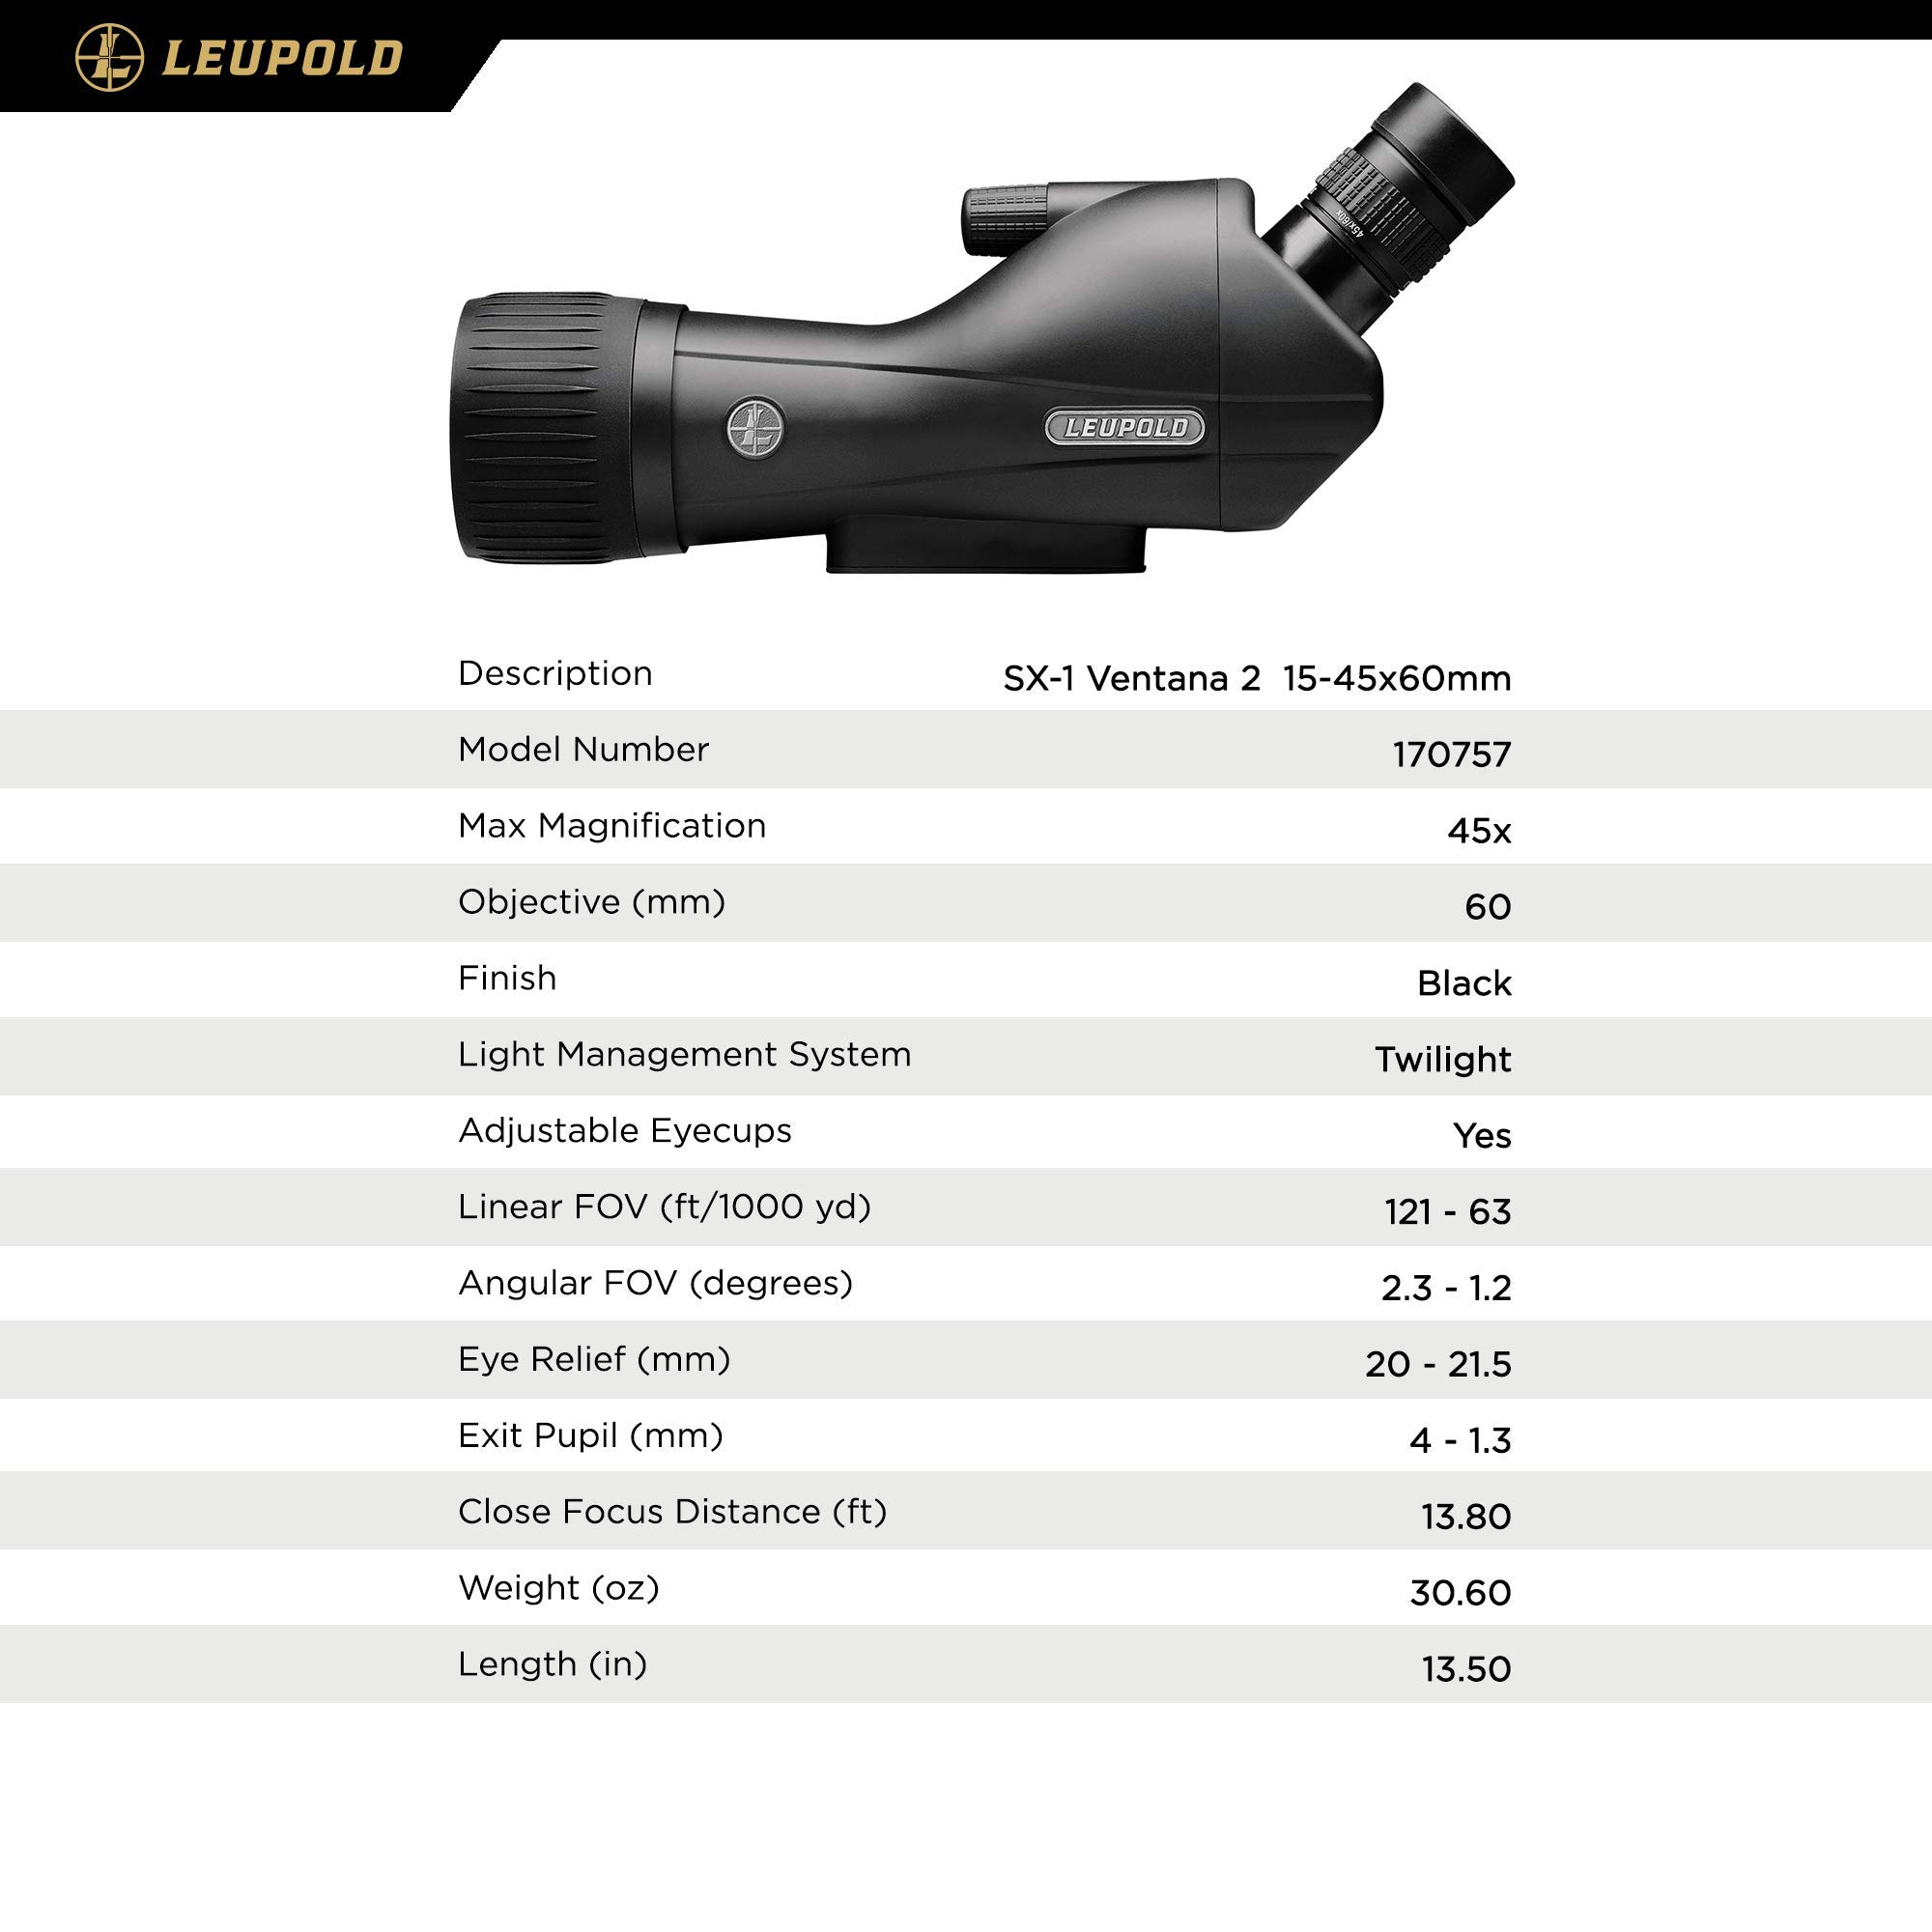 Leupold SX-1 Ventana 2 15-45x60mm Angled Spotting Scope, Black Finish by Leupold (Image #4)